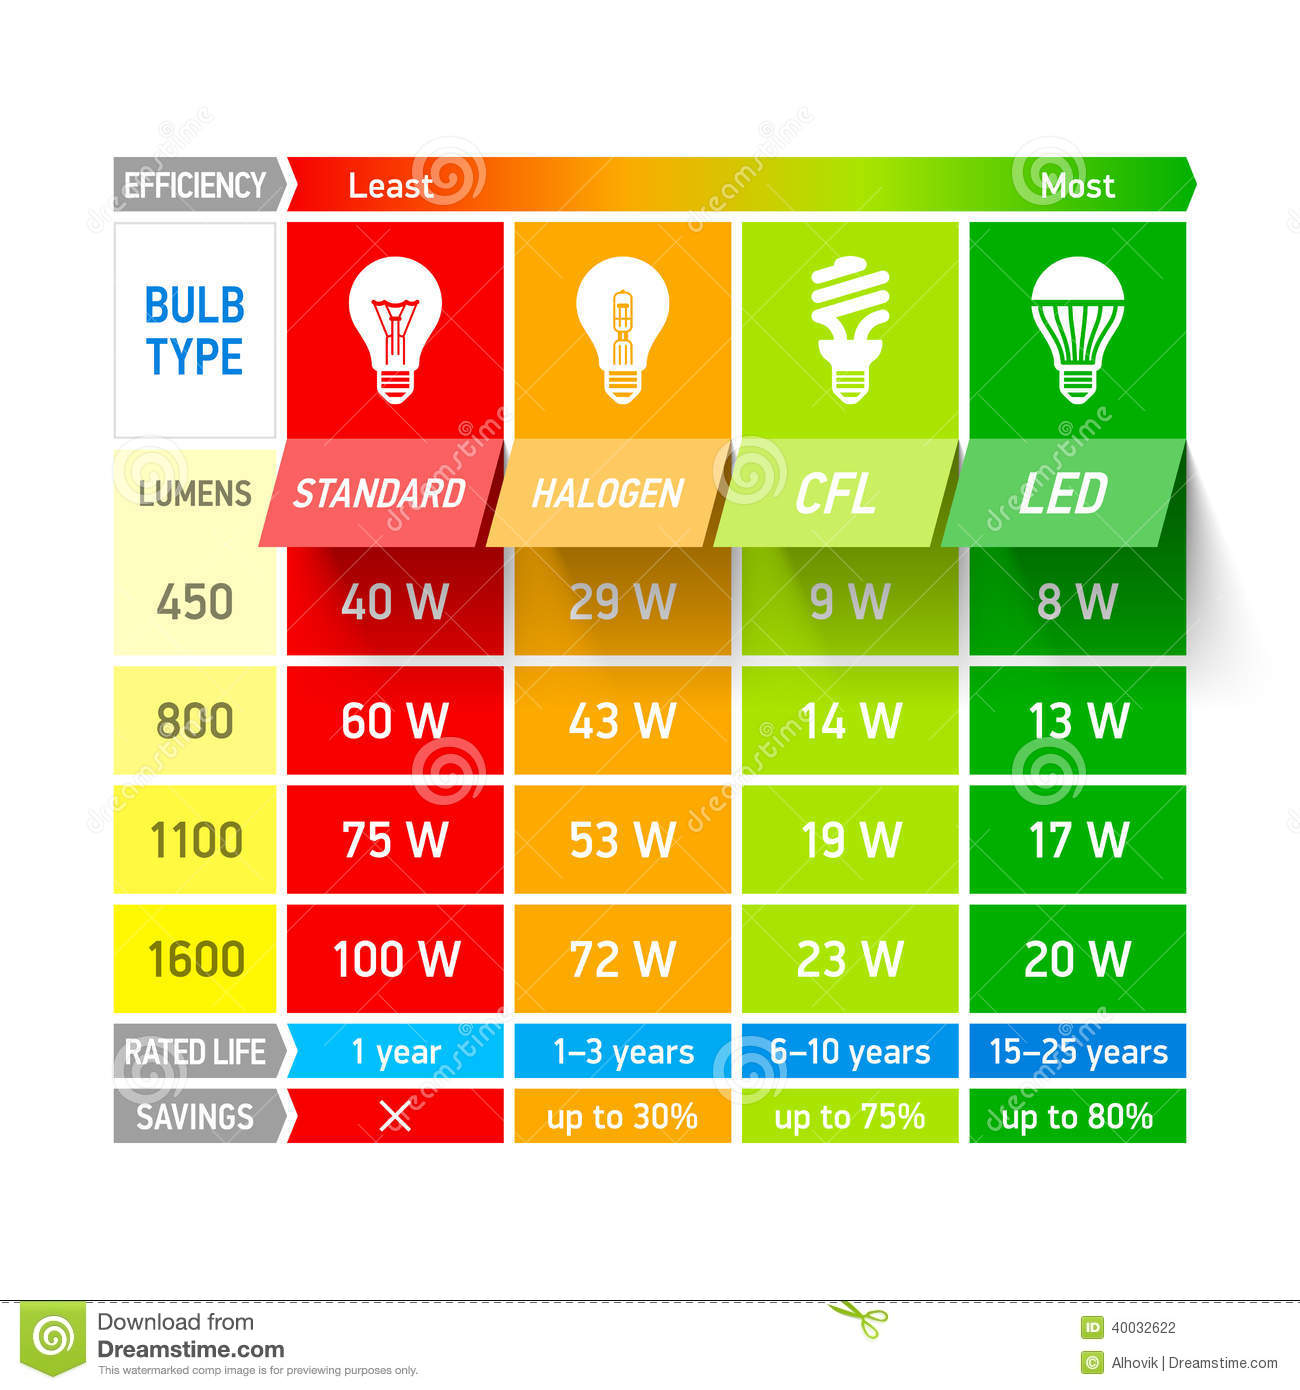 Incandescent Lamp Symbol Light Bulb Comparison Chart Infographic Stock Vector